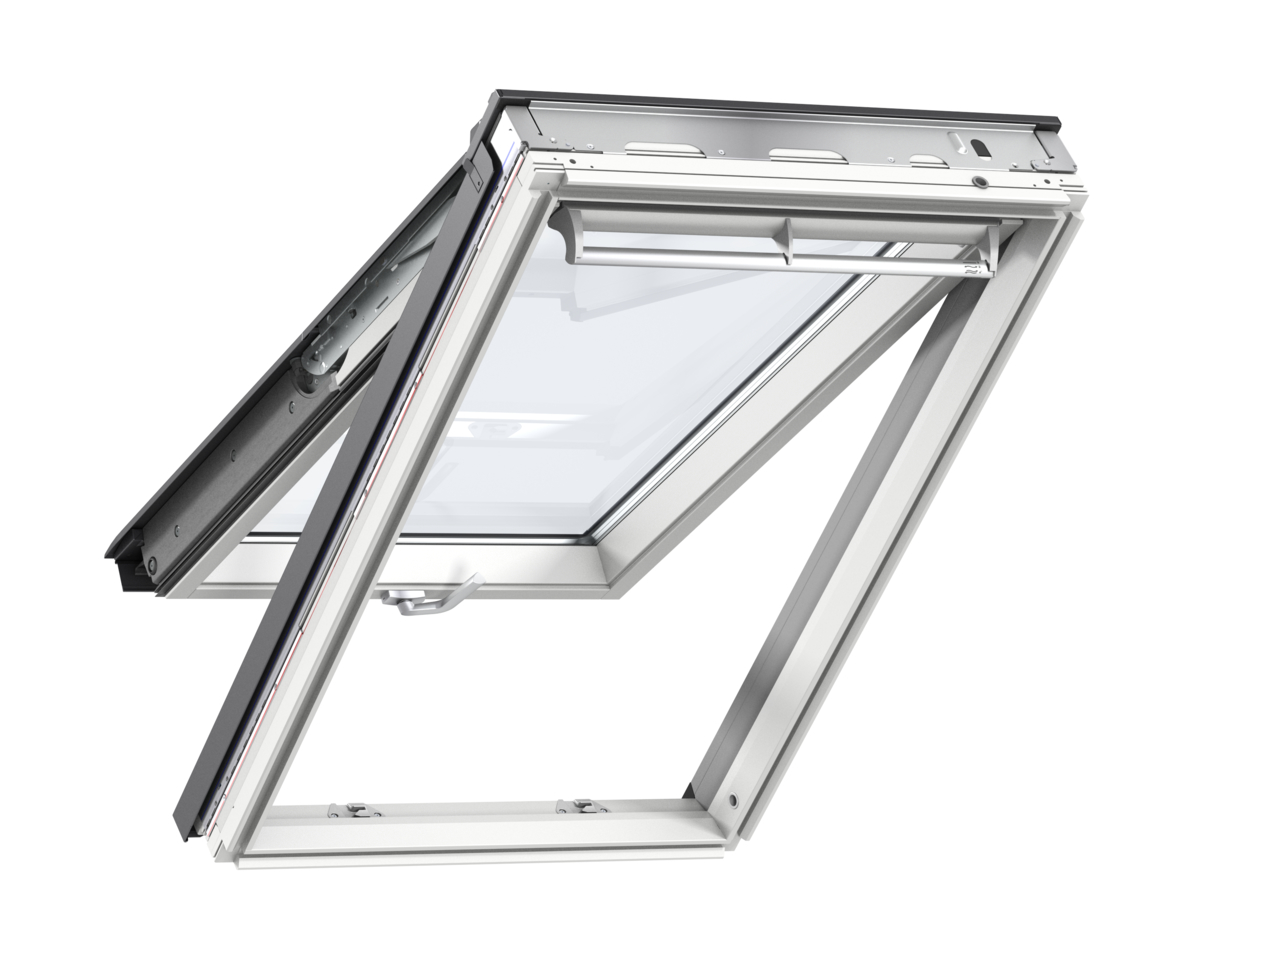 Velux GPL UK04 1340 x 980mm Top Hung 66Pane Roof Window - White Painted